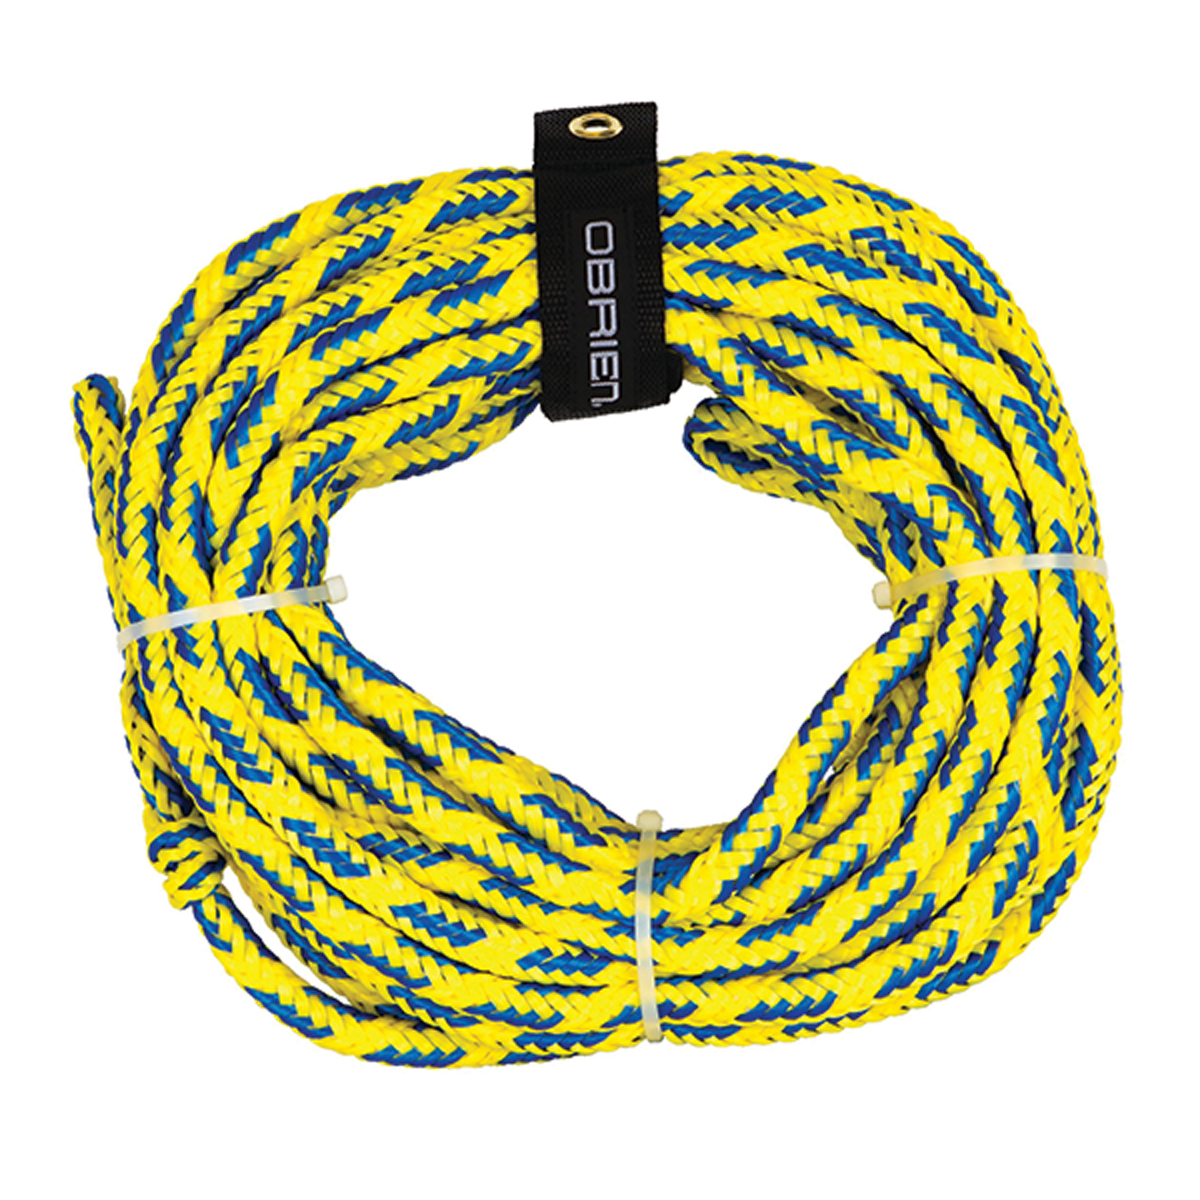 2 Person Tube Rope, Yellow Gold, swatch